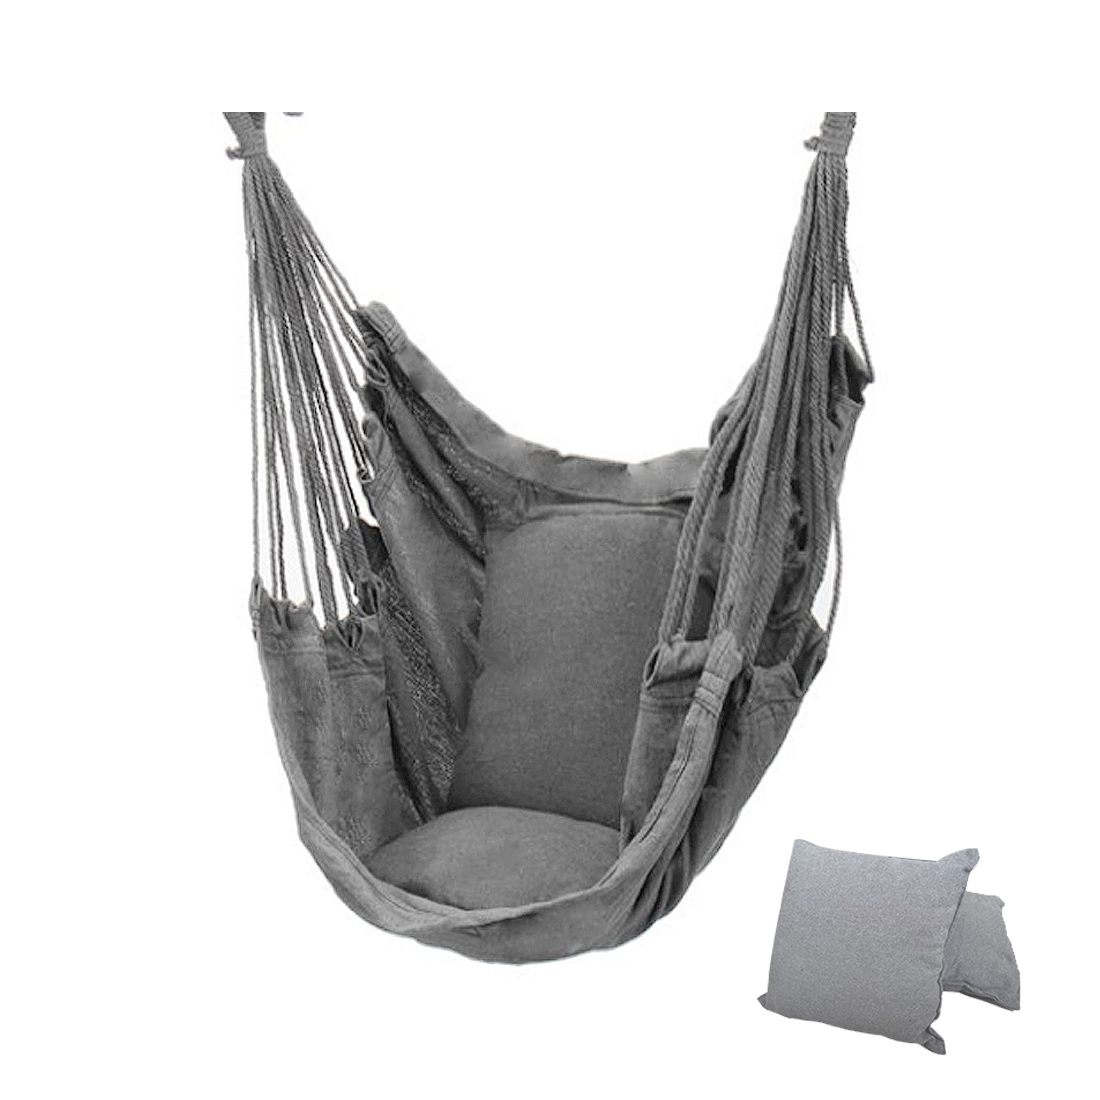 New Thicken Hammock Chair Hanging Swing Chair Outdoor Portable Relaxation Canvas Swing Travel Camping Lazy Chair wIth/no Pillow 1